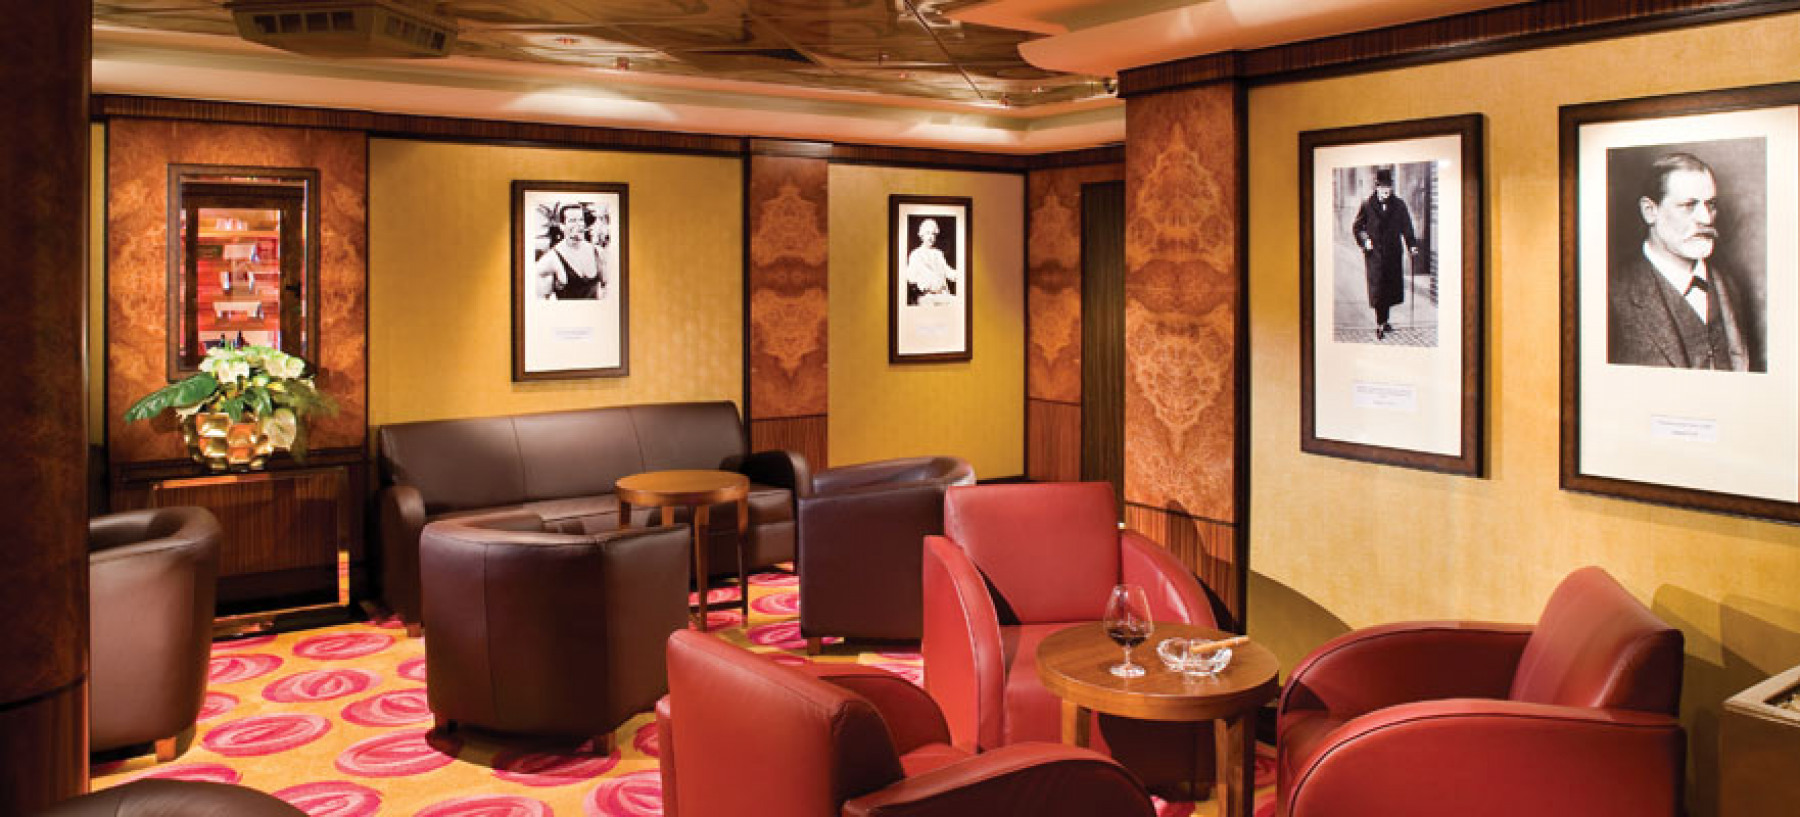 Norwegian Cruise Line Norwegian Pearl Cigar lounge.jpg